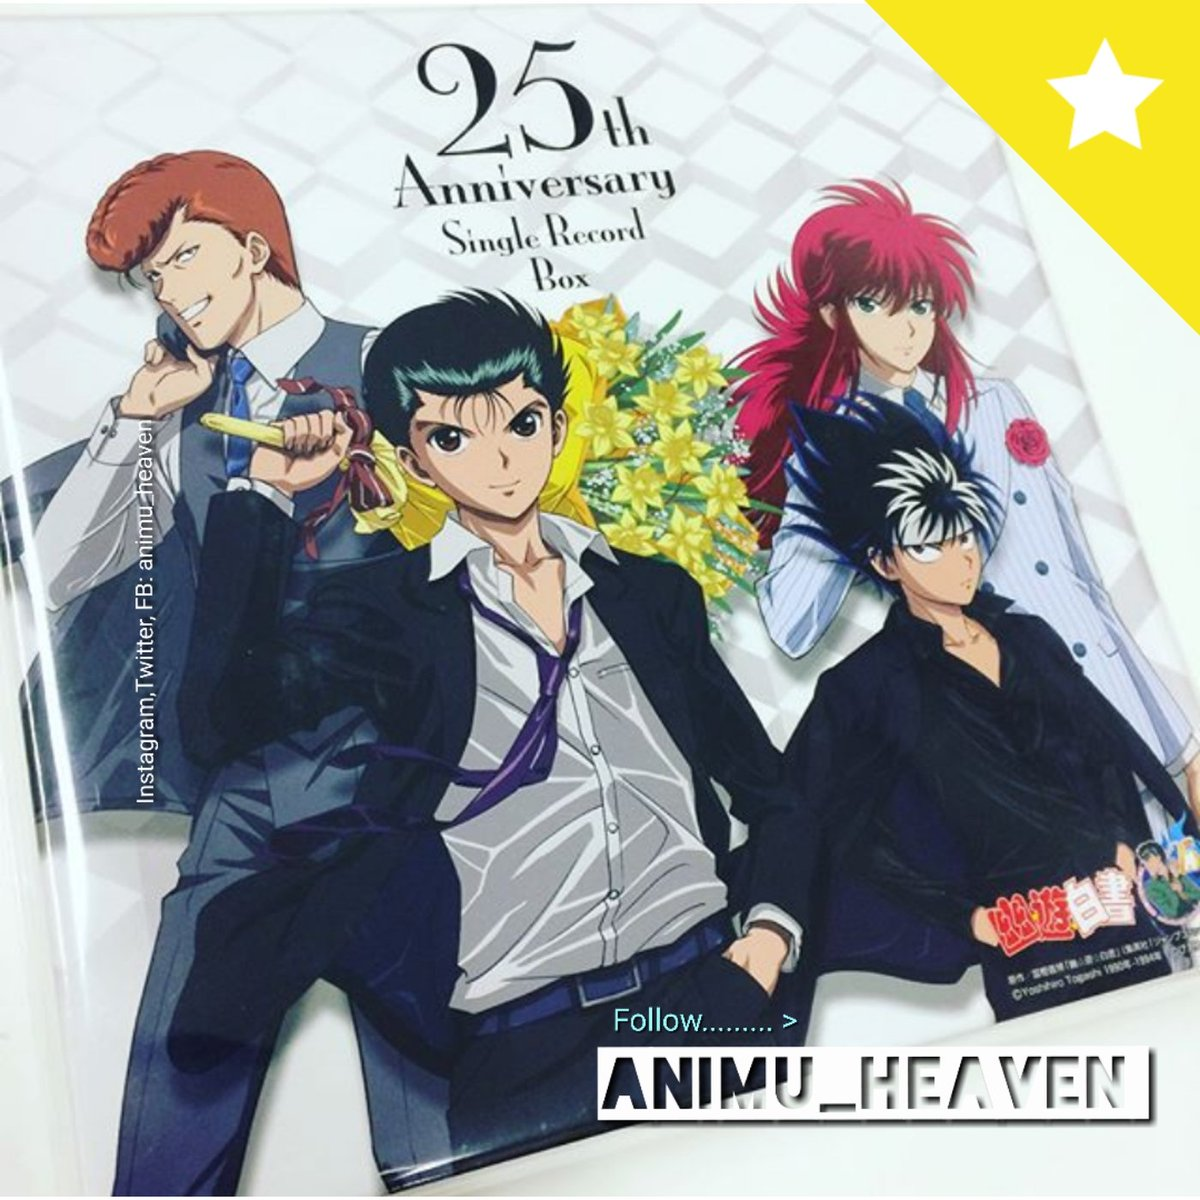 Animu Heaven On Twitter Yu Hakusho Coming Back With A Bang This 2018 25th Anniversary Record Box I Used To Watch As Child Animax